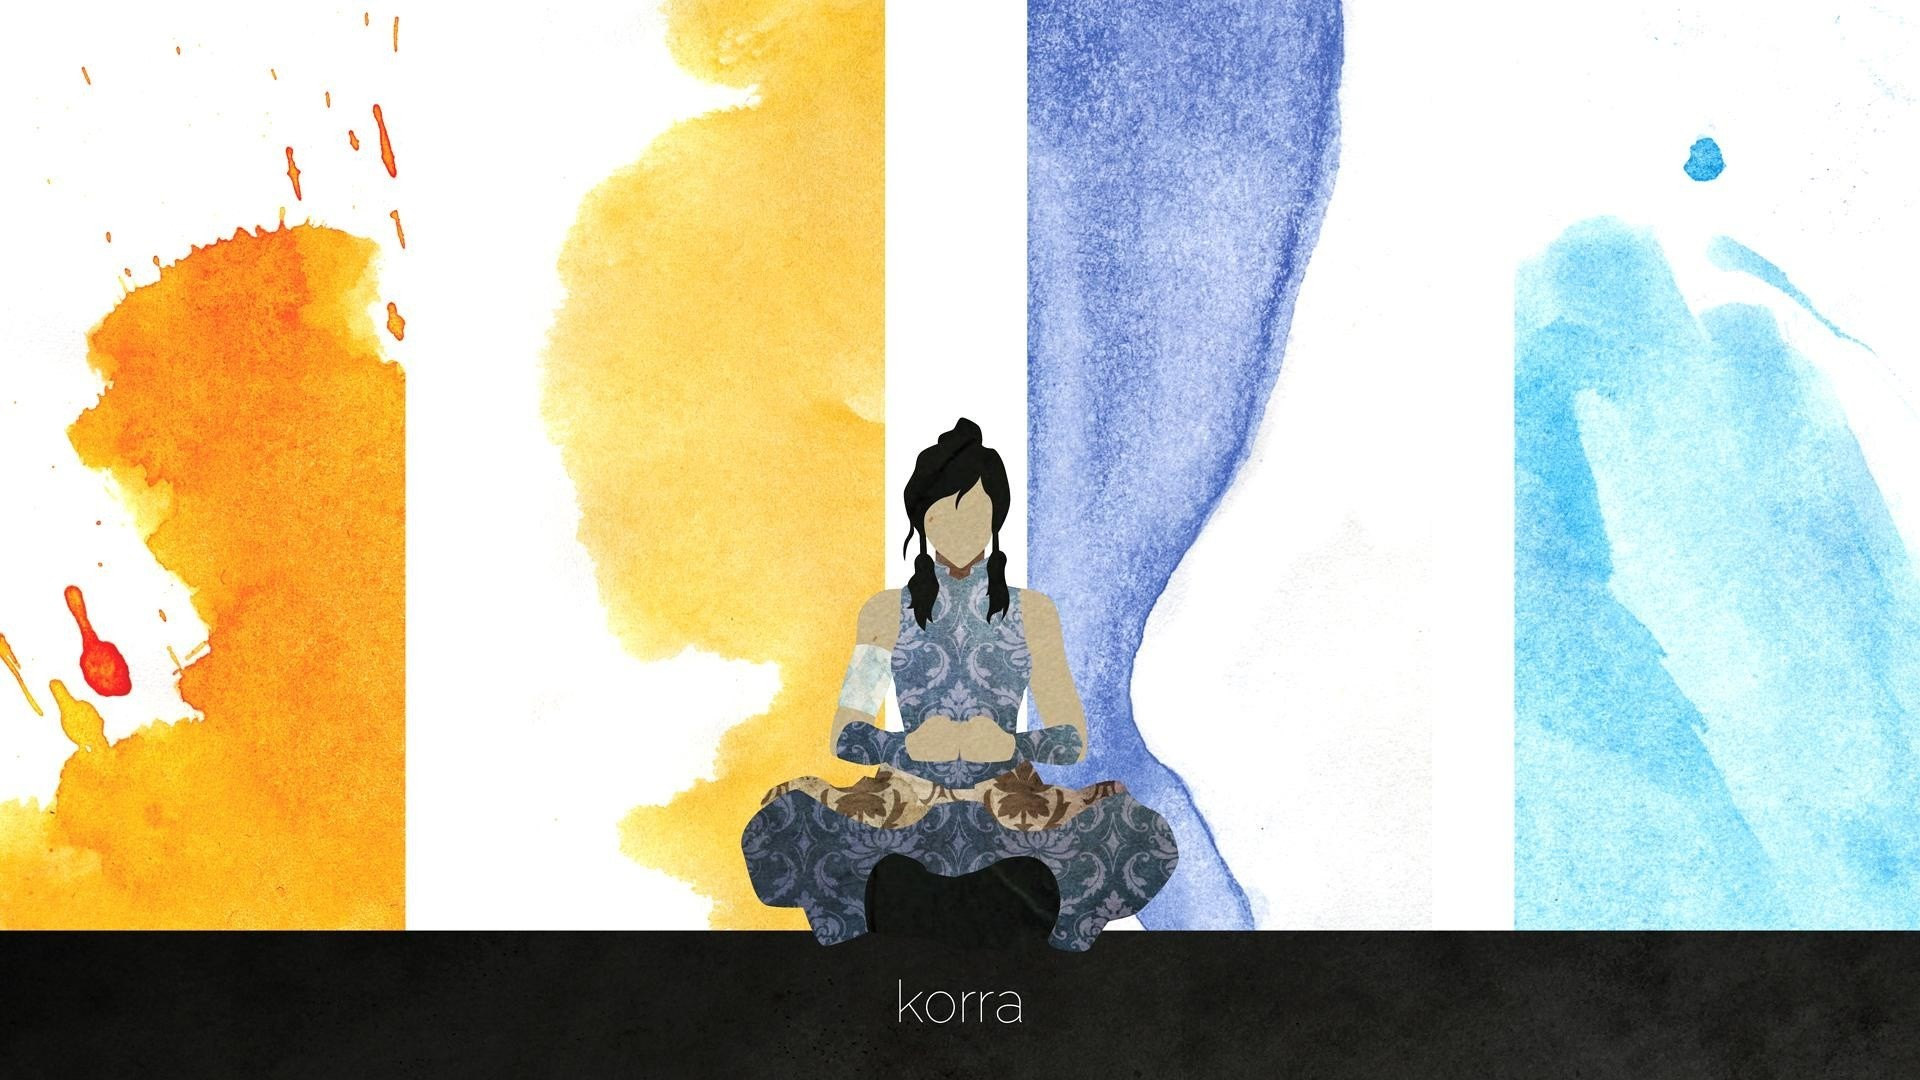 1920x1080 Background High Resolution: avatar the legend of korra